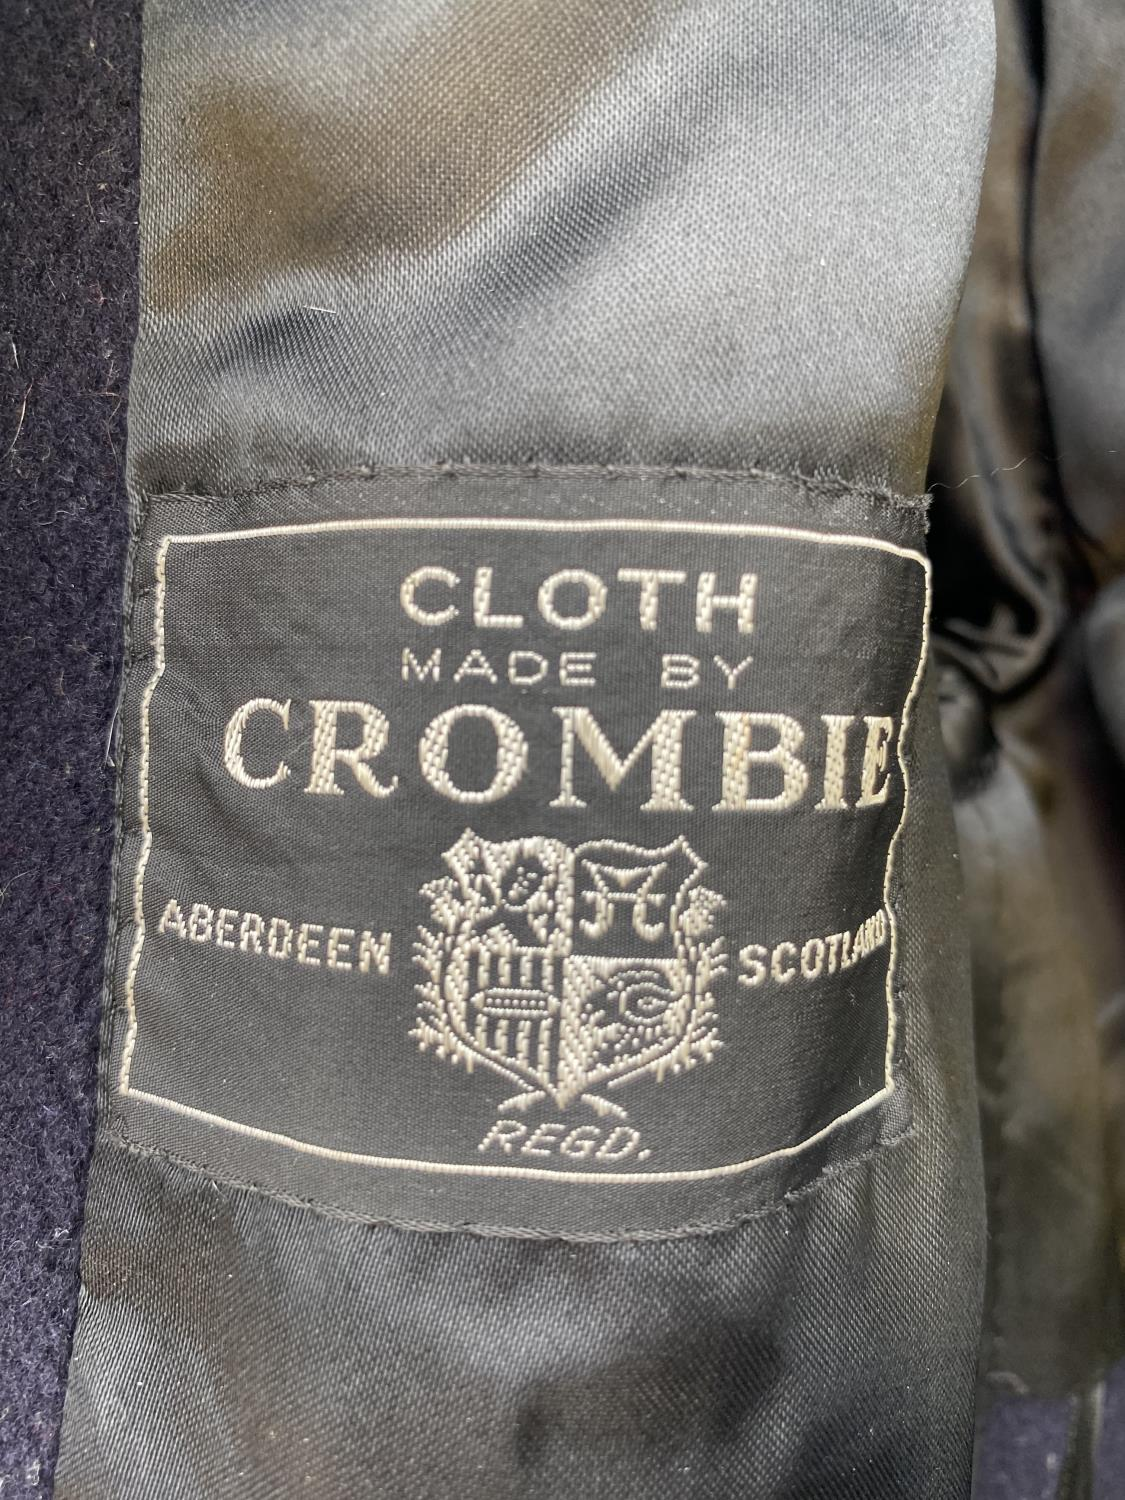 A GENTS CROMBIE JACKET - Image 2 of 5